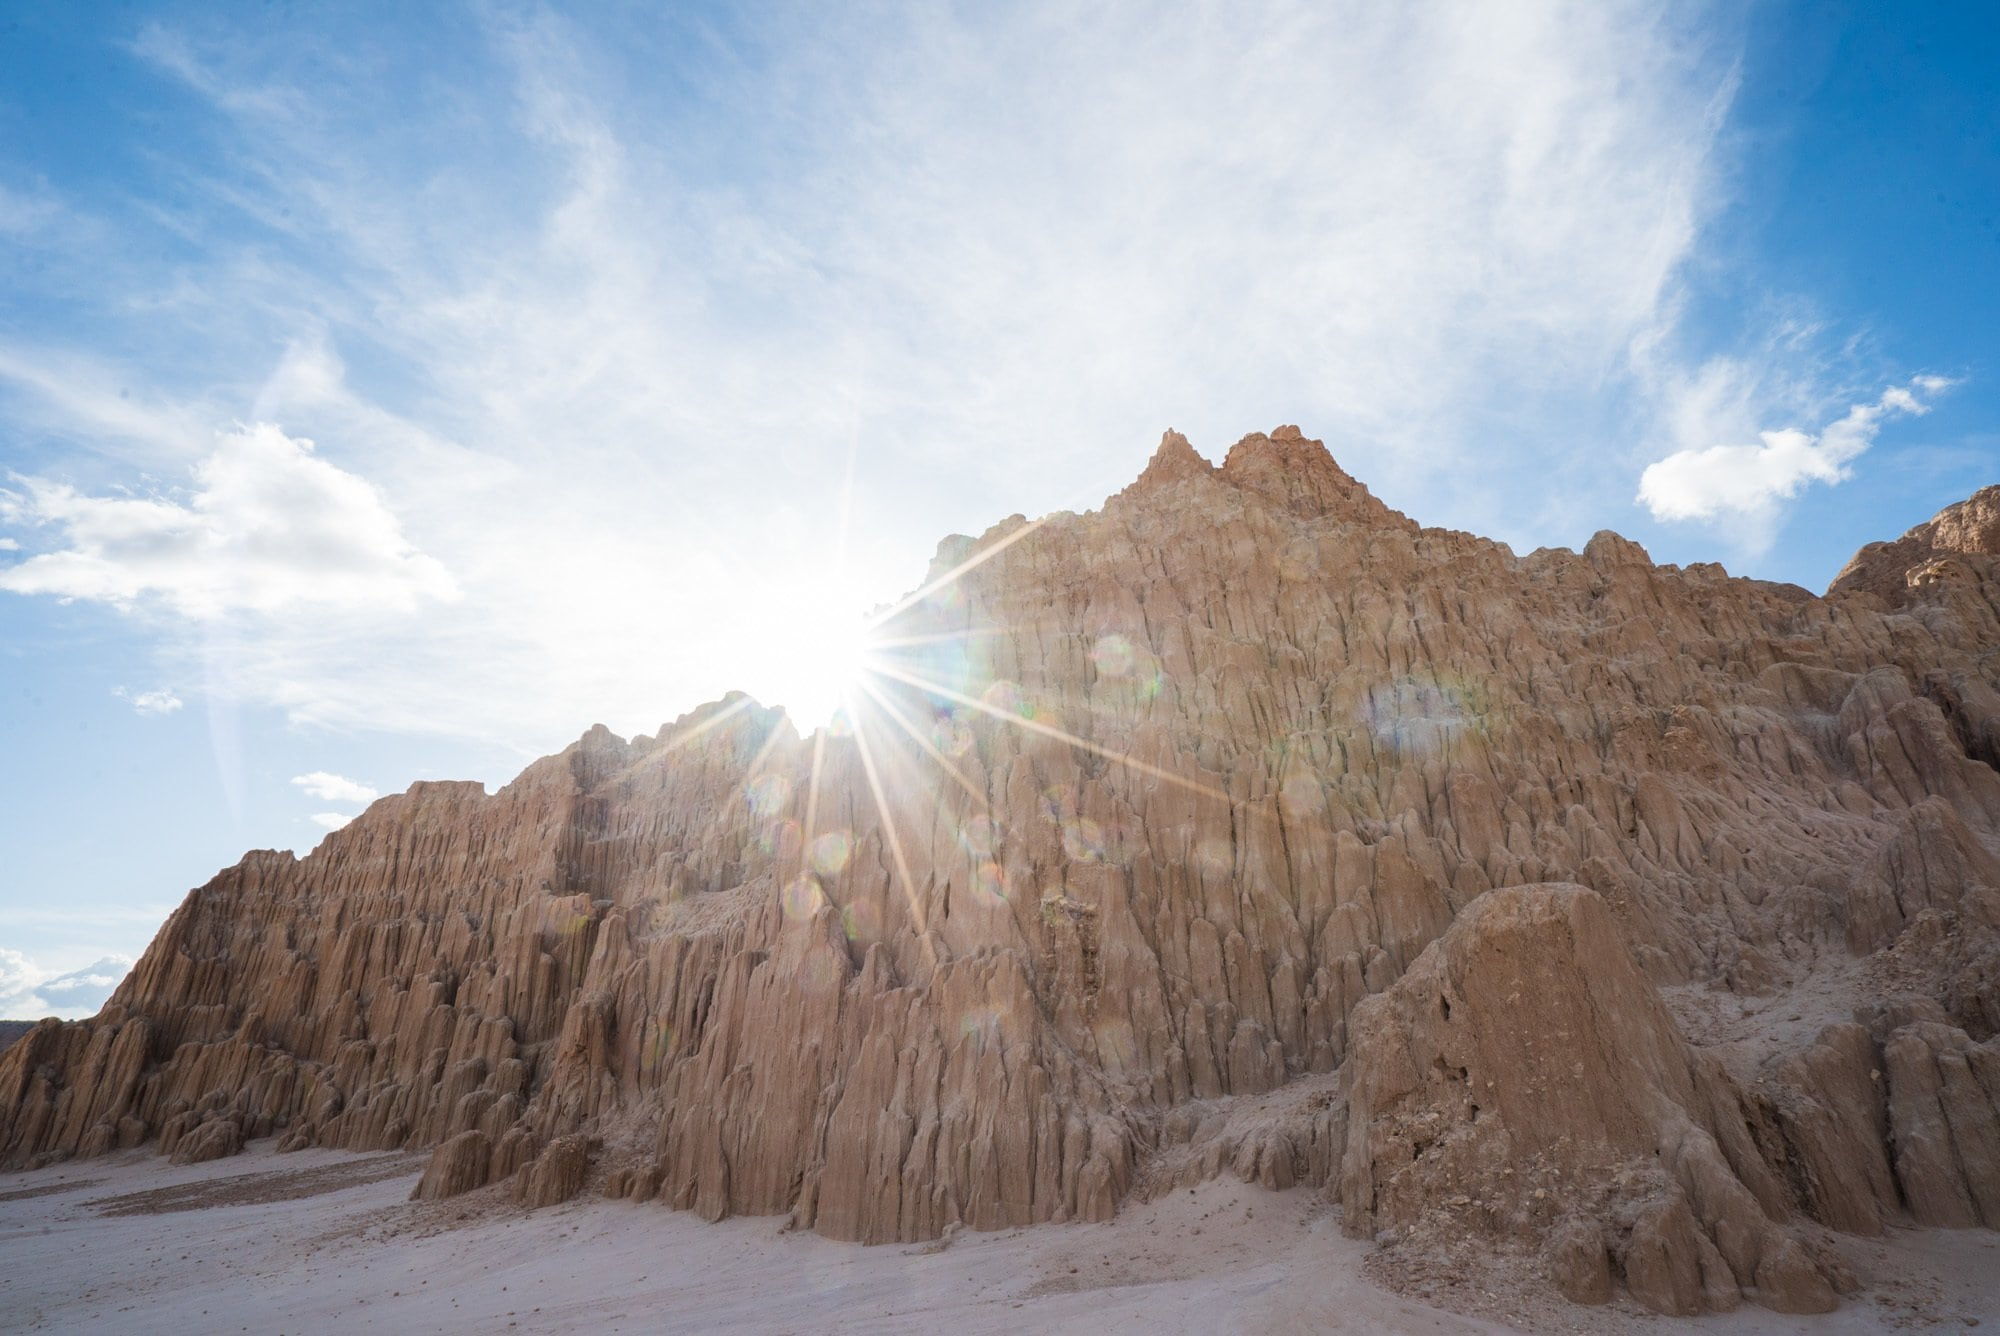 Cathedral State Park // Visit 12 of the best Nevada road trip stops, from the top state parks to hot springs, ghost towns & trails where you'll find solitude and amazing landscapes